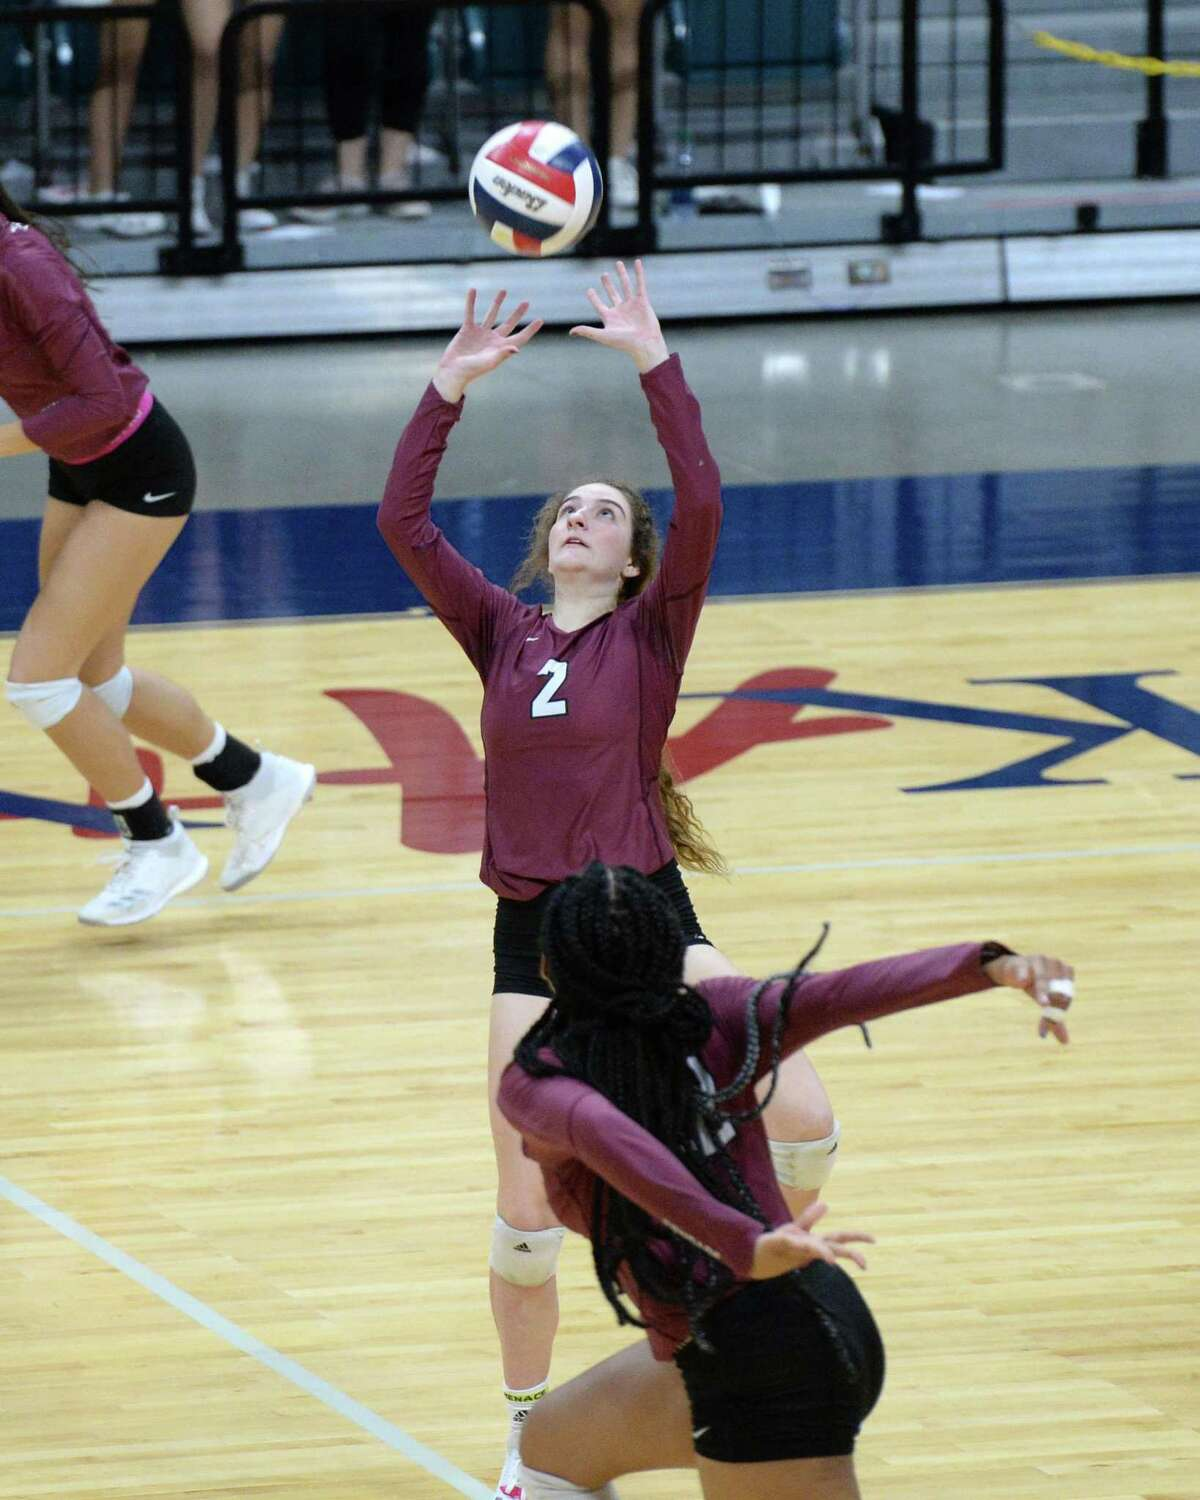 Eva Fitzgerald (2) of Cinco Ranch sets a ball in the third set of a Class 6A - III Regional Quarterfinal playoff volleyball match between the Cinco Ranch Cougars and the Katy Tigers on Monday, November 5, 2018 at the Leonard Merrell Center, Katy, TX.